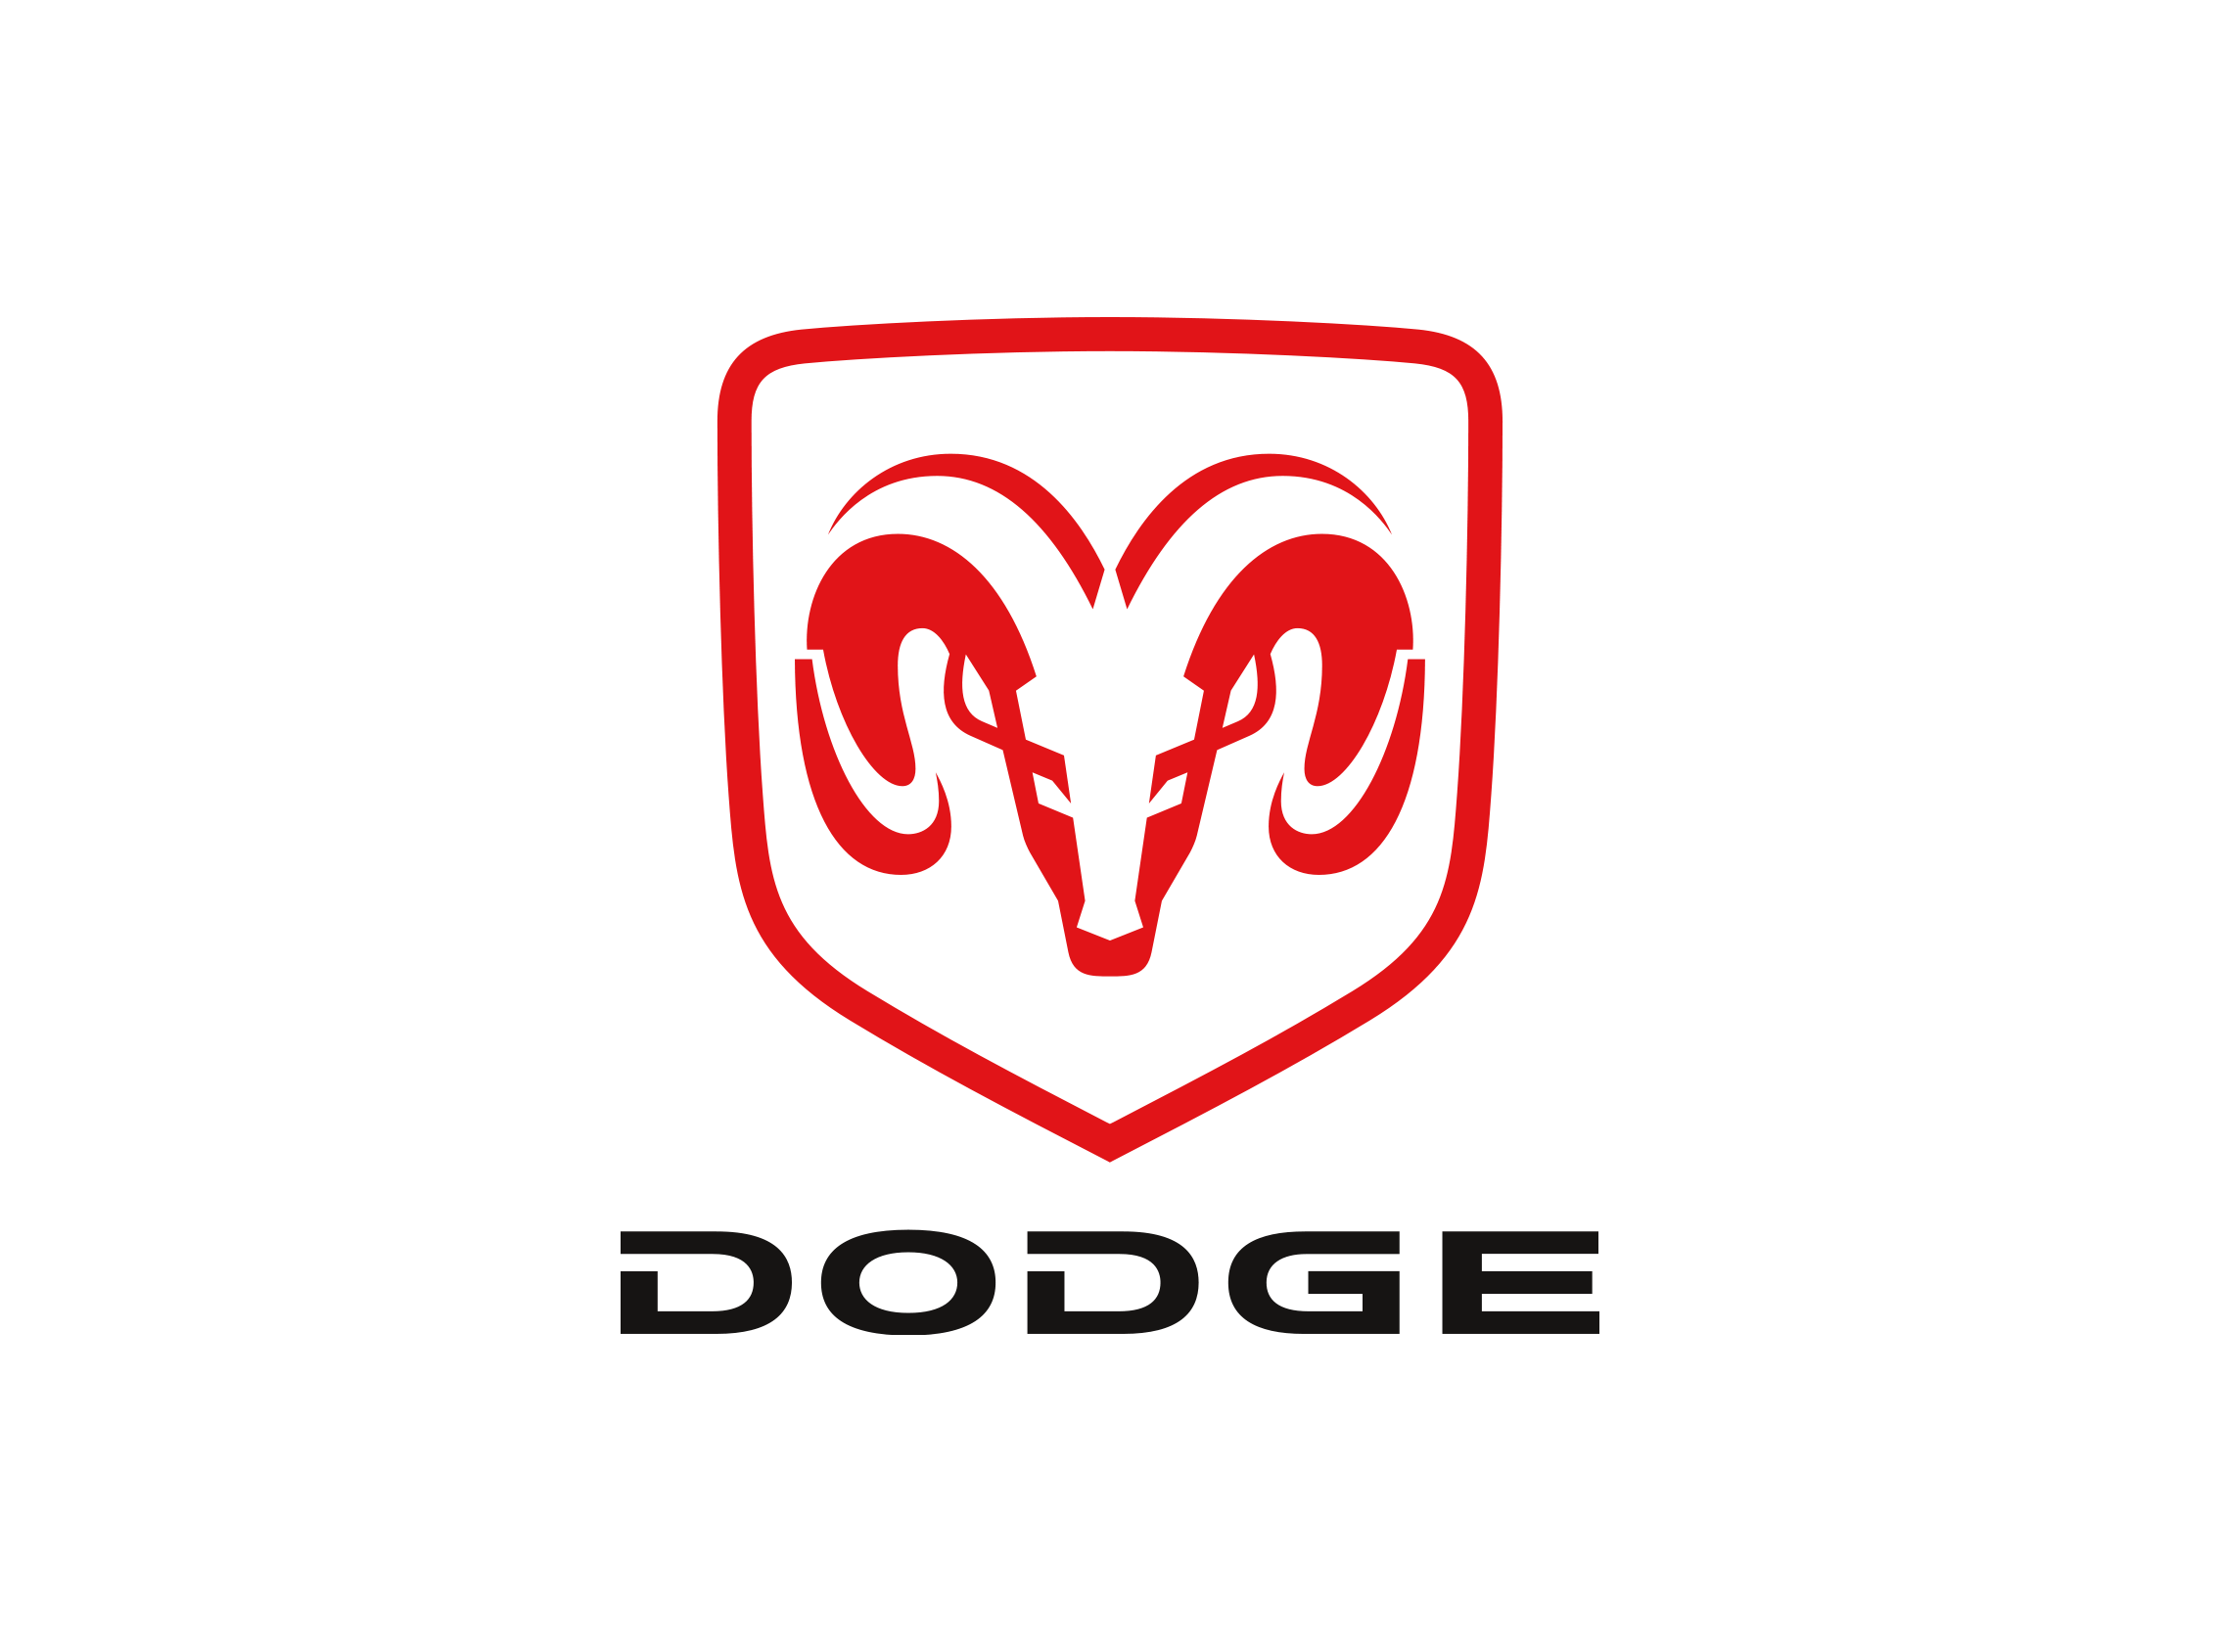 DODGE MOTOR IMPORT BRANDS VOITURE IMPORT USA MIAMI IMPORT VOITURE EUROP IMPORT USA MOTOR IMPORT7 - MORGAN importation voiture des Etats Unis MORGAN votre mandataire automobile usa